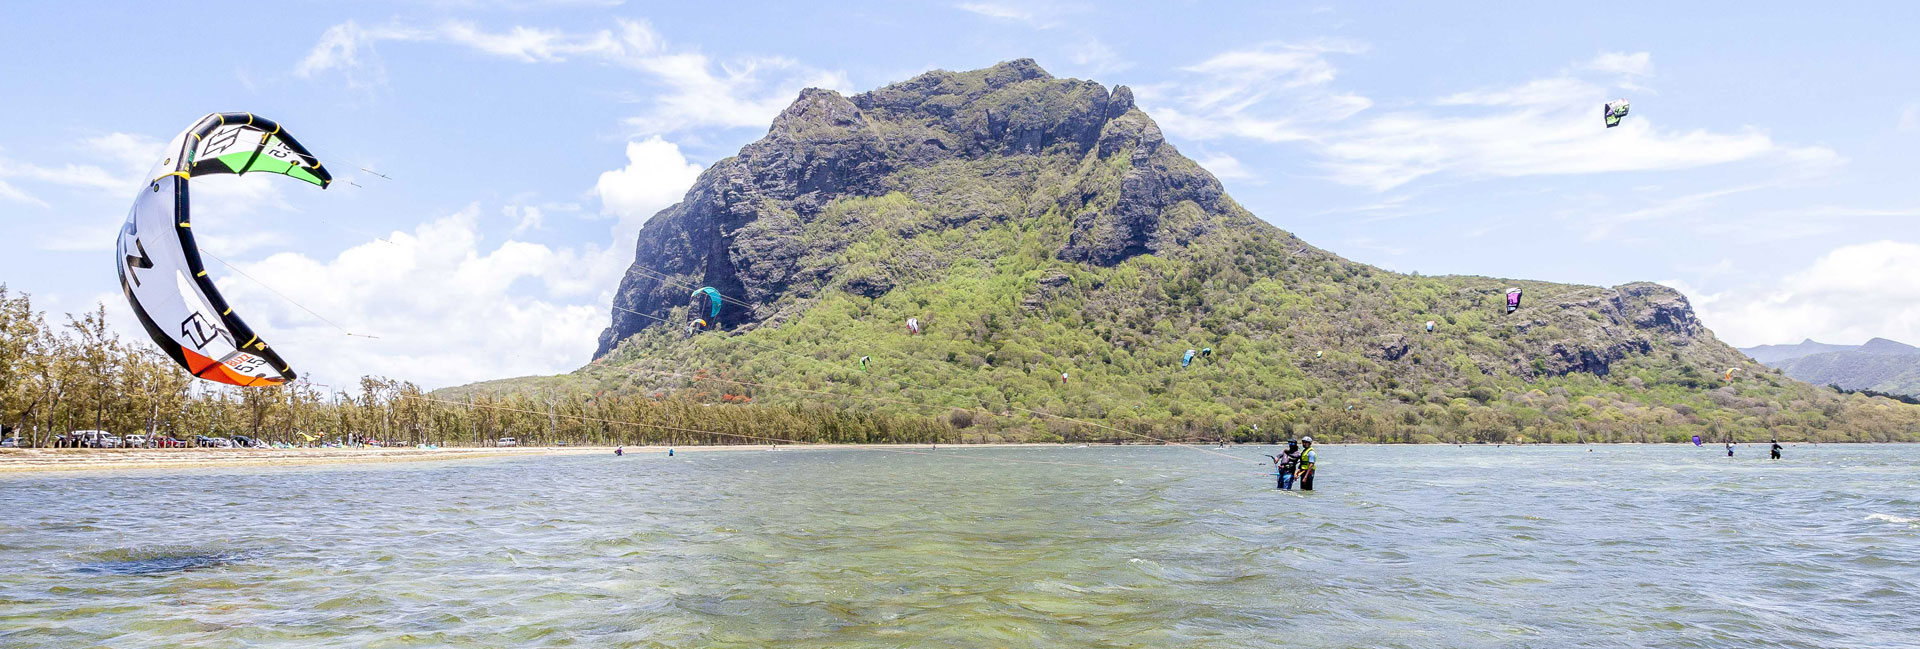 kite-lesson-lagoon-le-morne